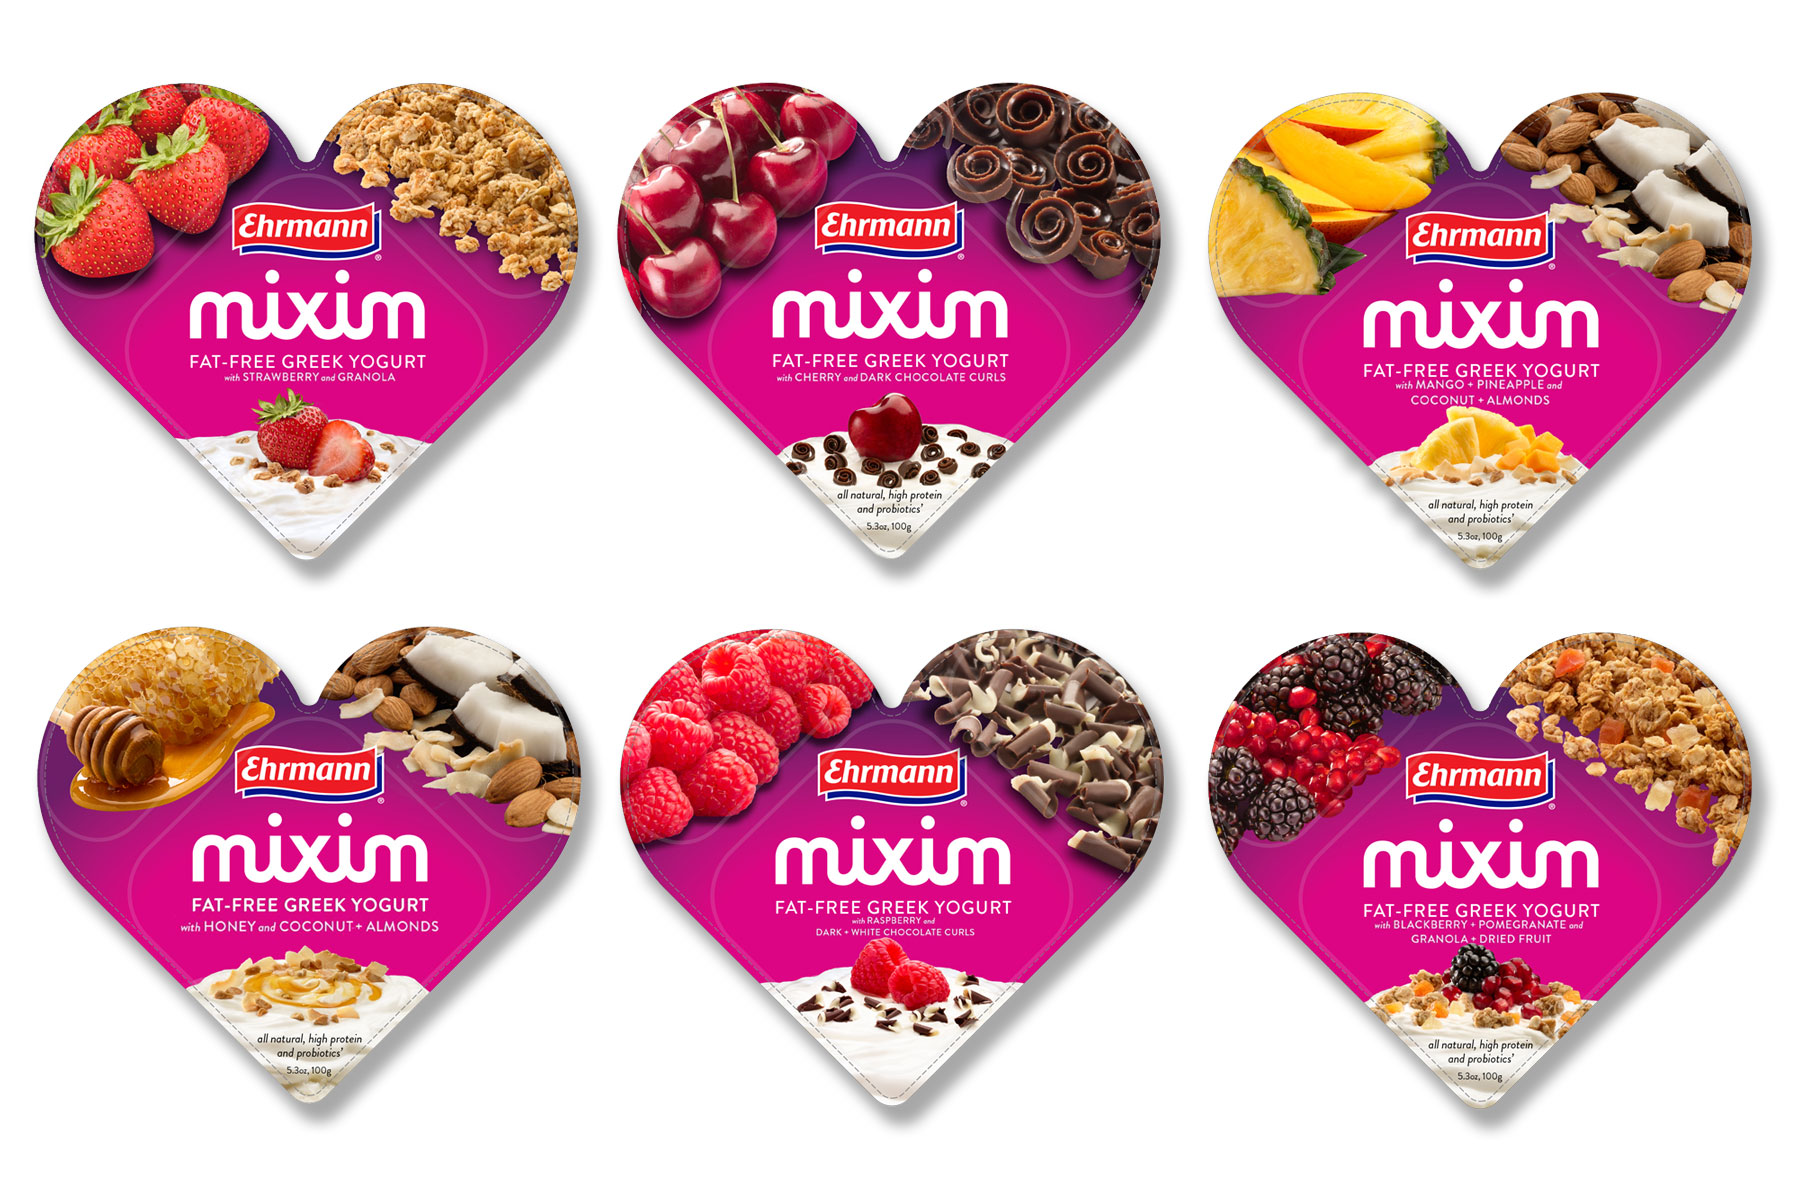 Ehrmann Mixim Packaging